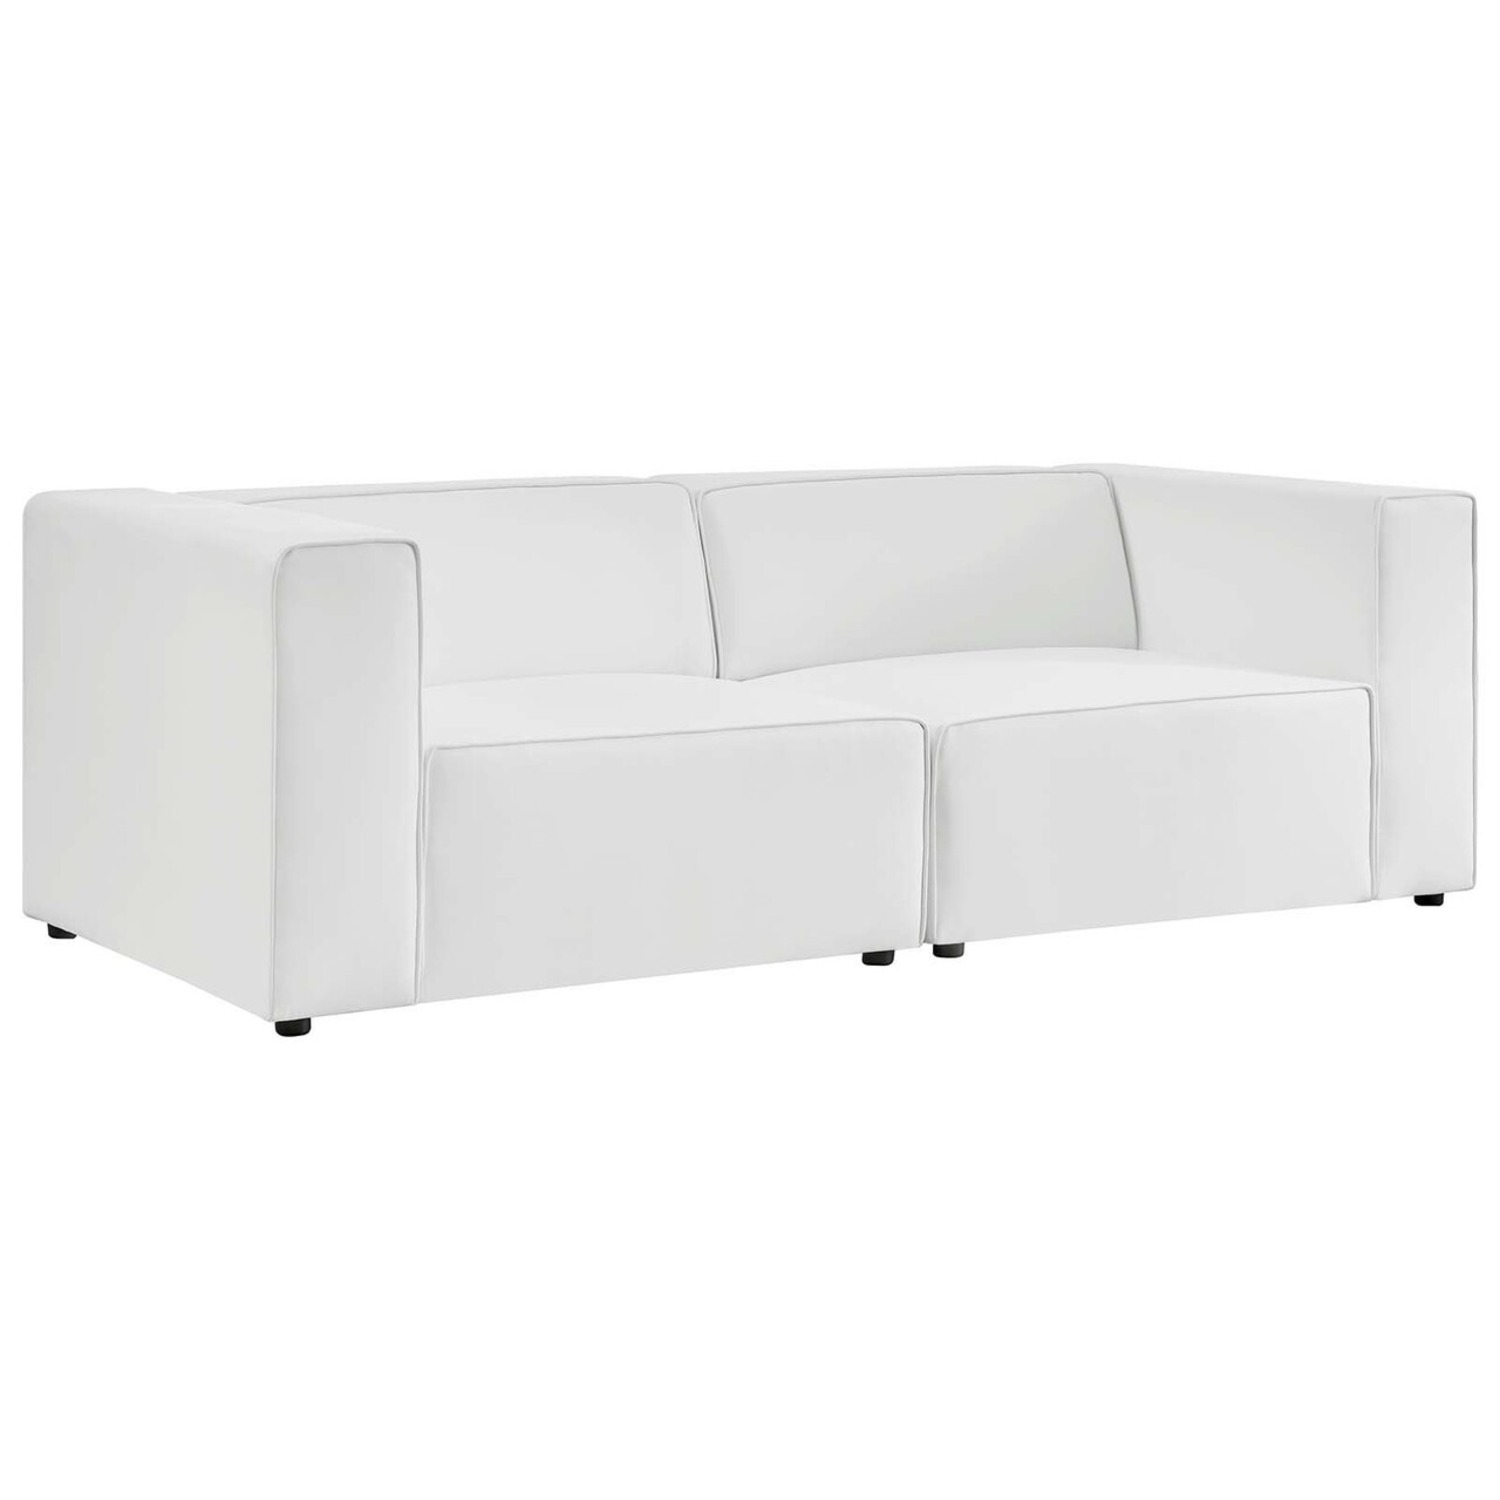 2-Piece Sectional Sofa In White Leather Finish - image-0